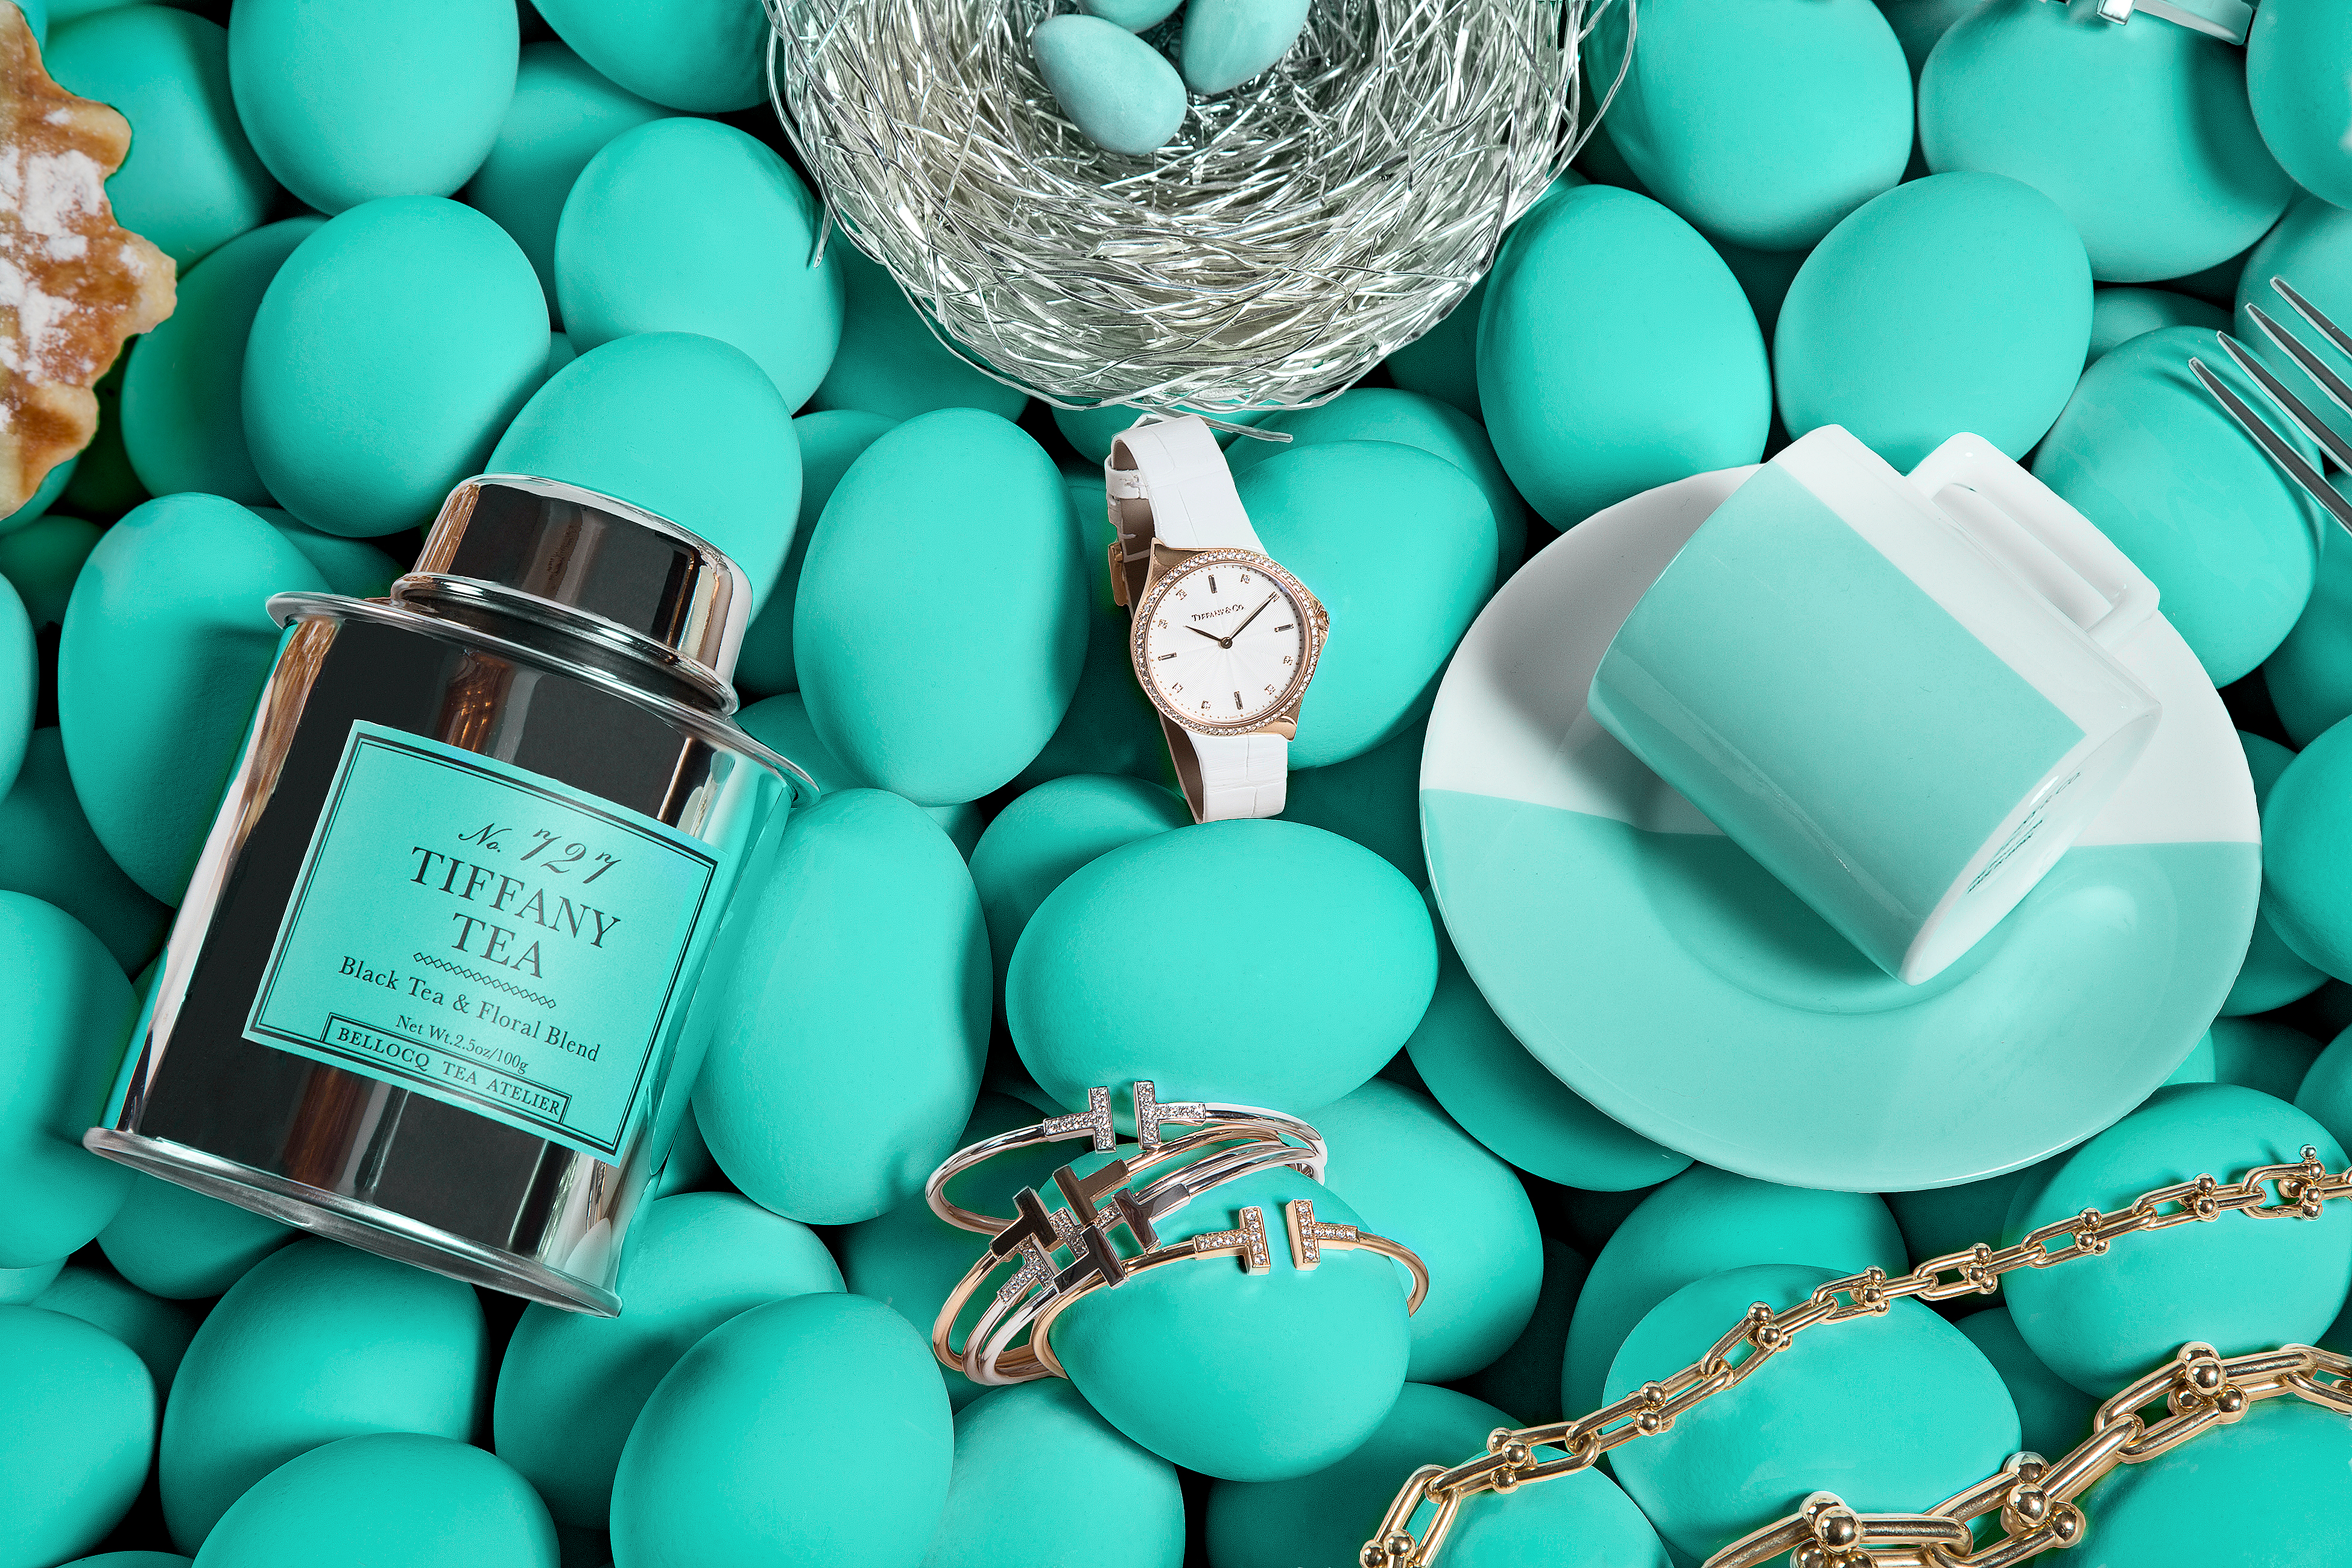 31f525086 Tiffany Tea No. 727 Black Tea and Floral Blend; Everyday Objects Sterling  Silver Bird's Nest with Tiffany Blue Porcelain Eggs; Tiffany Metro Watch in  18k ...